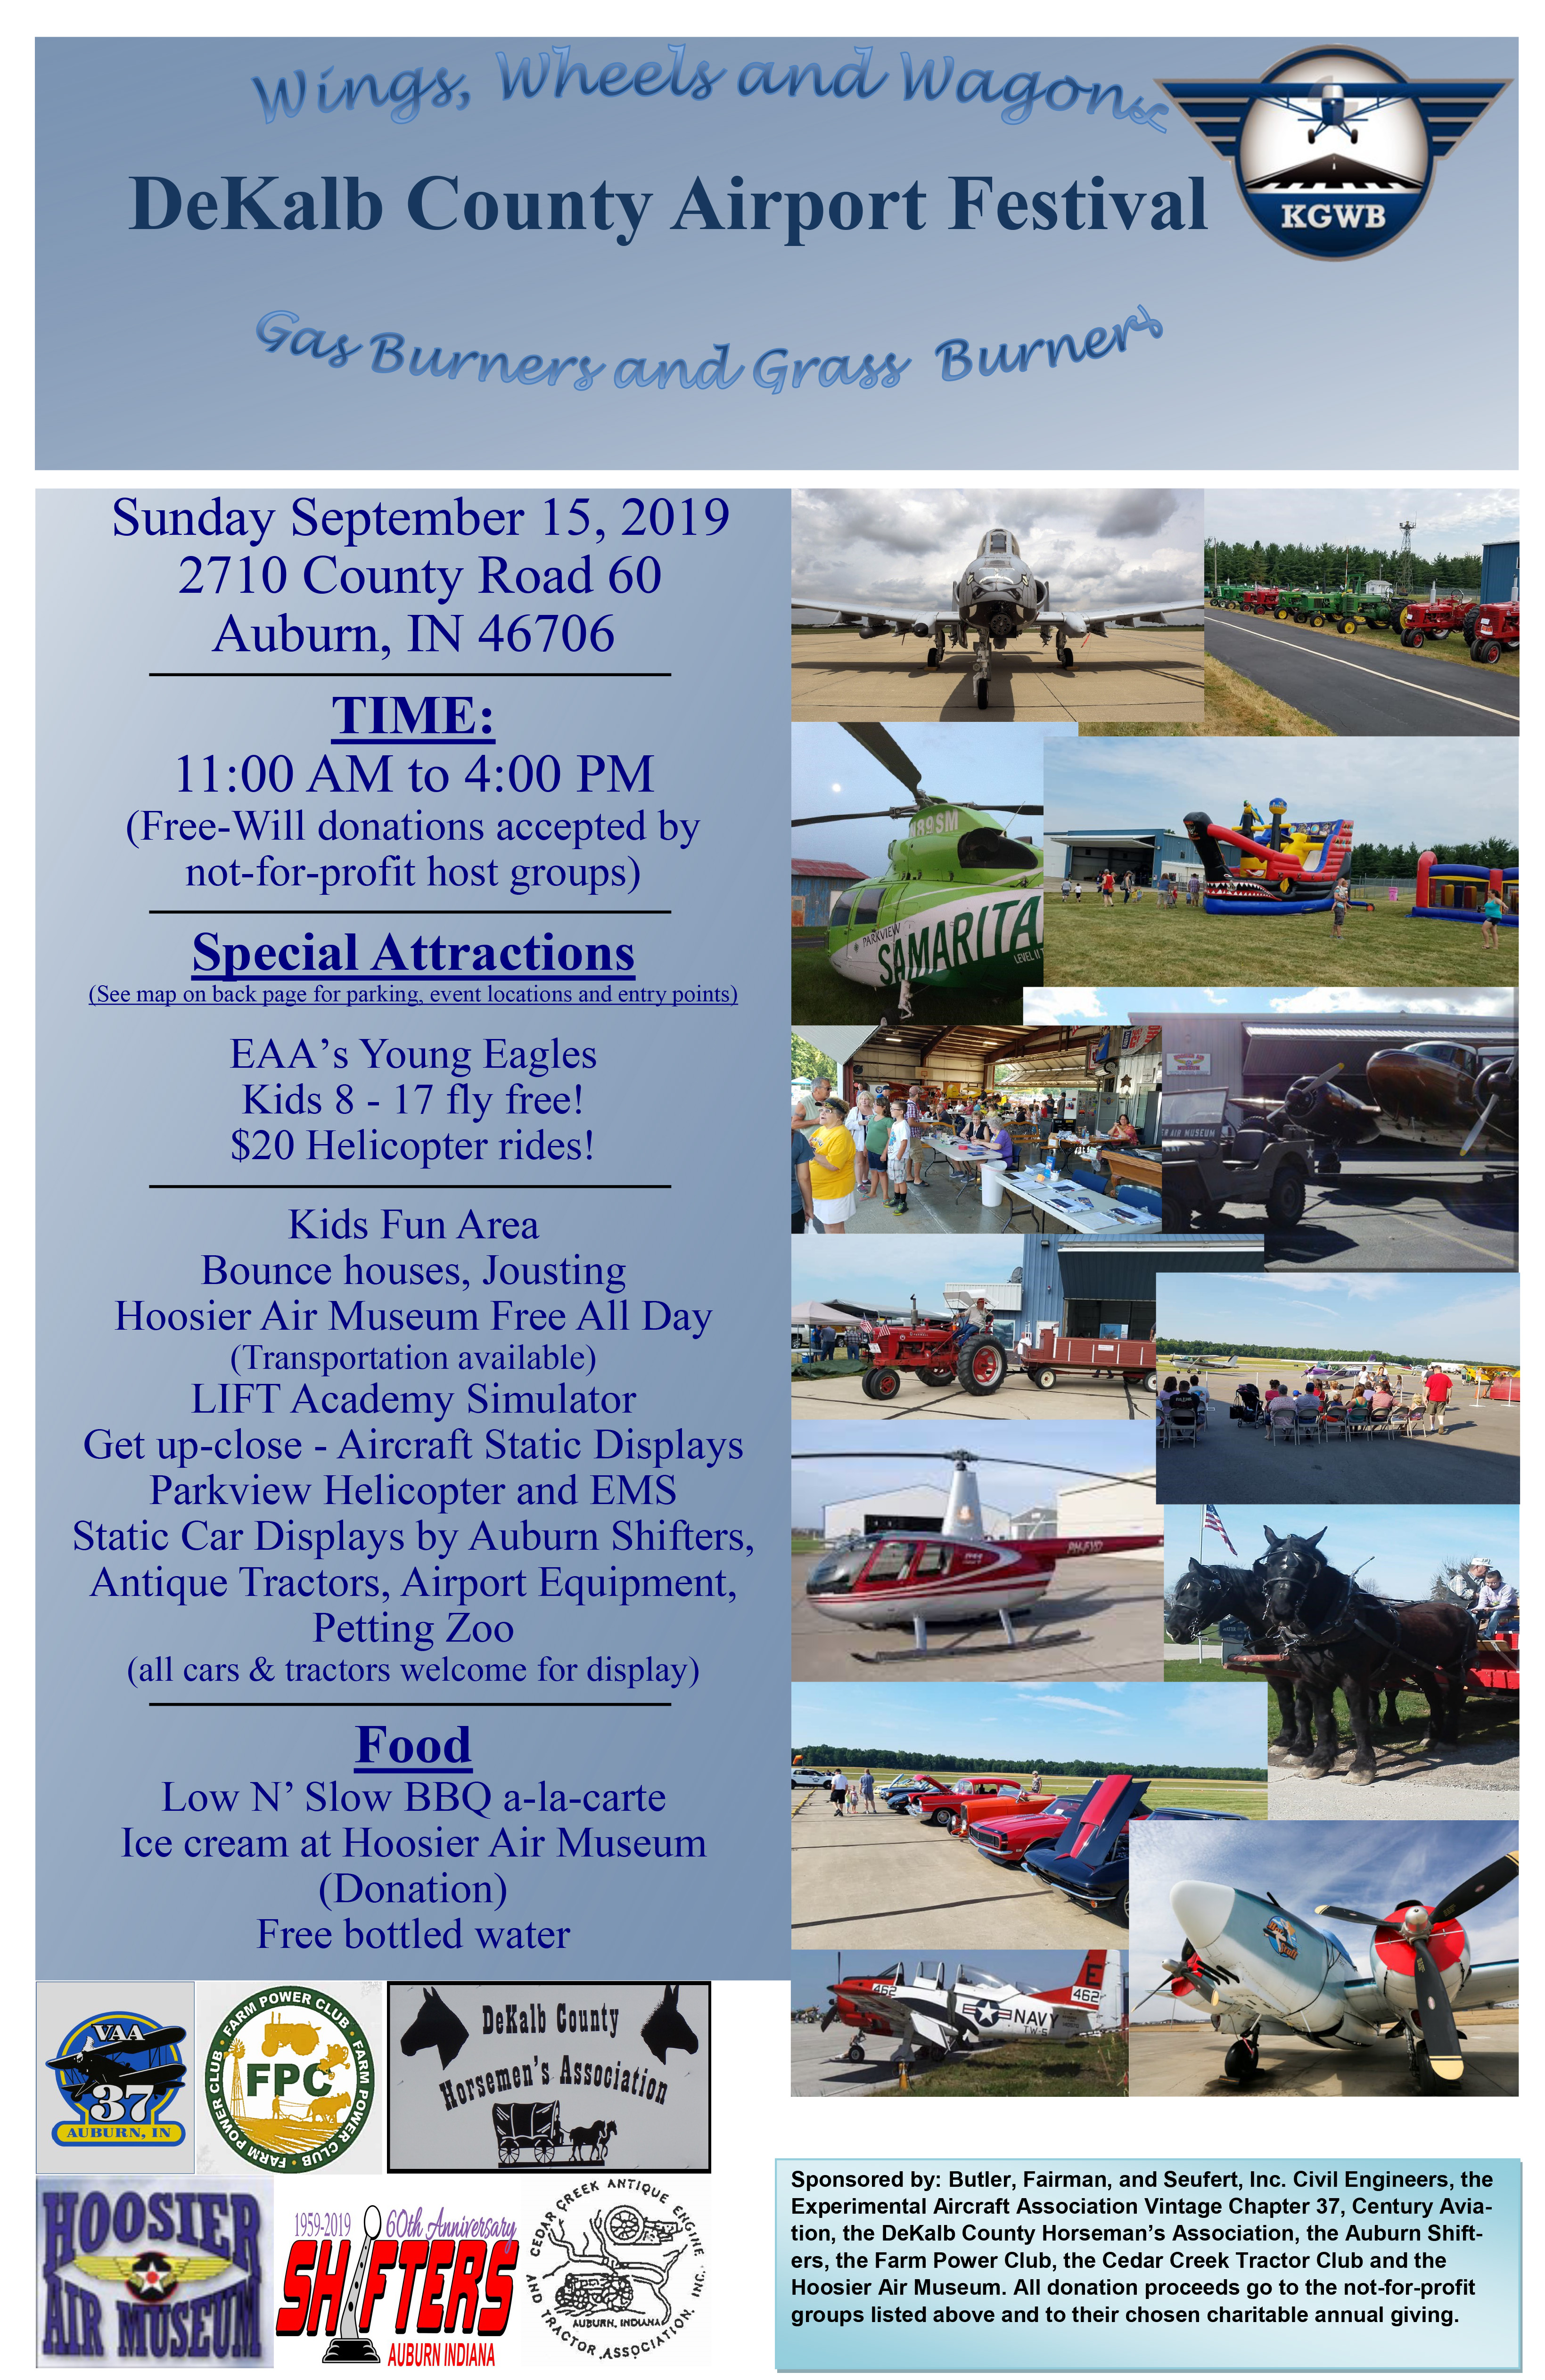 Wings, Wheels and Wagons Festival